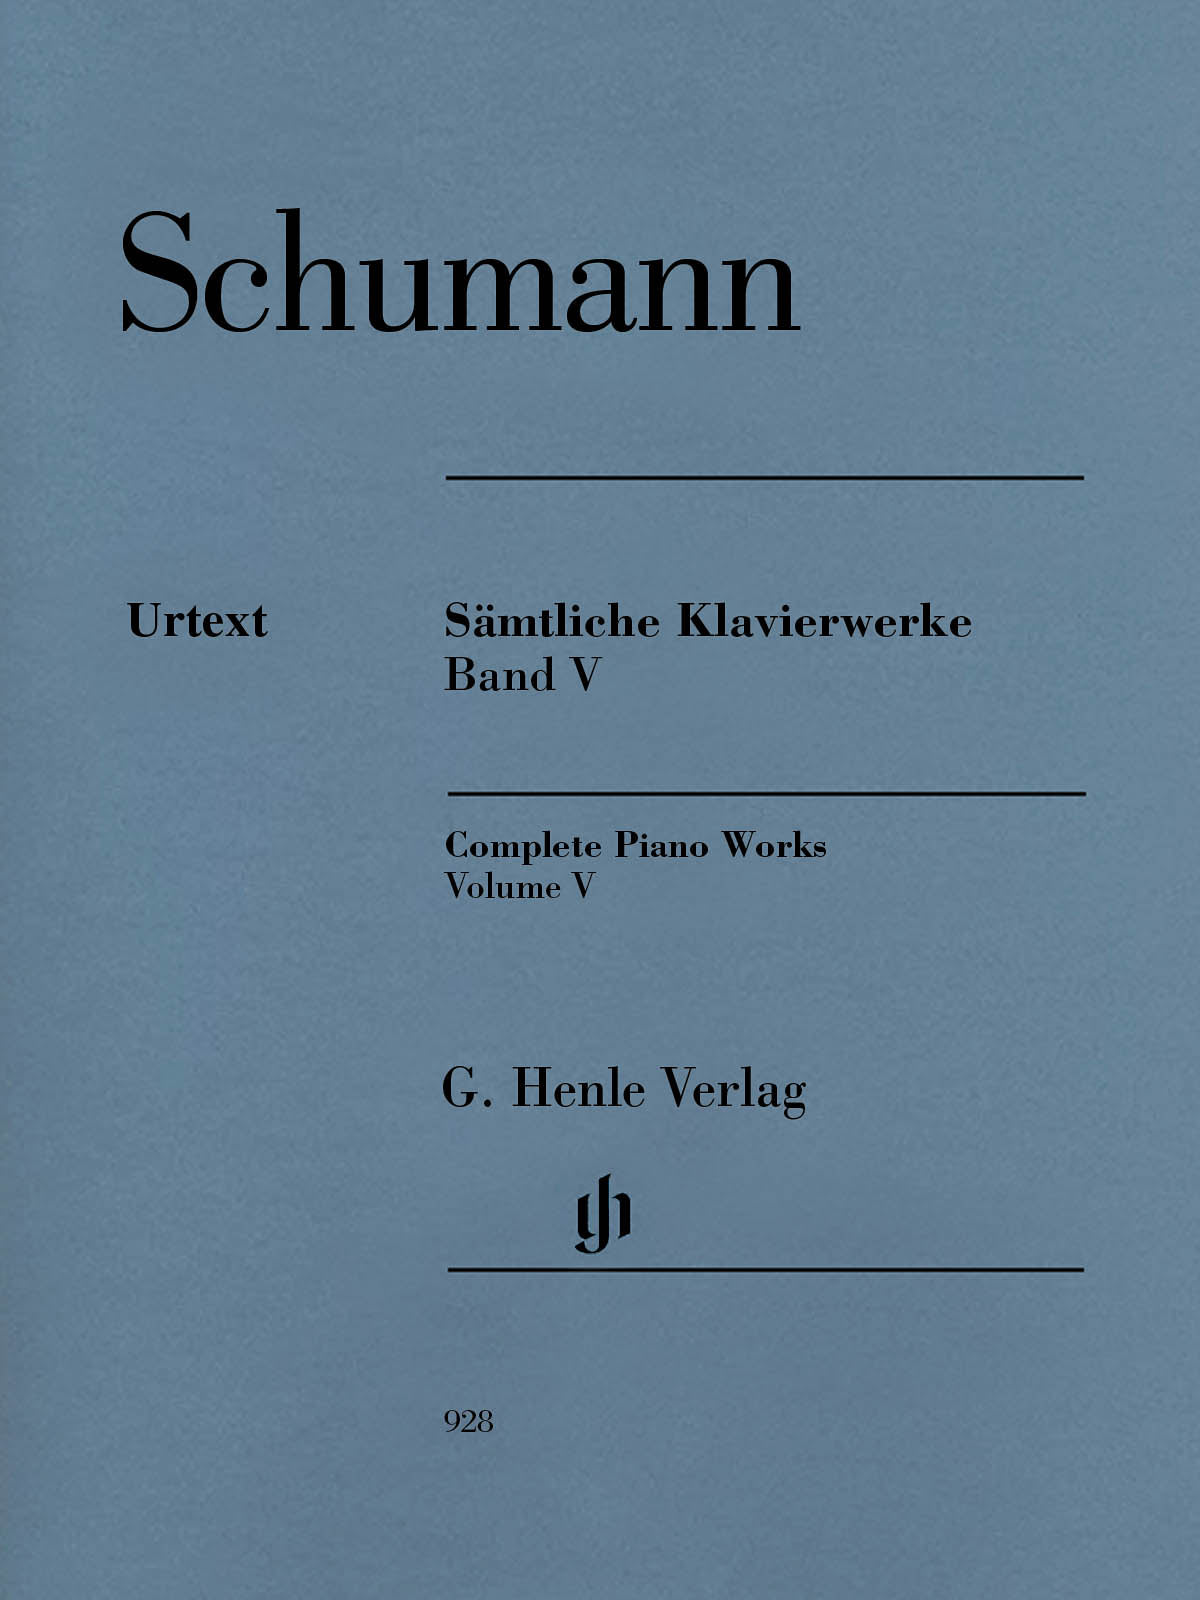 Schumann: Complete Piano Works - Volume 5